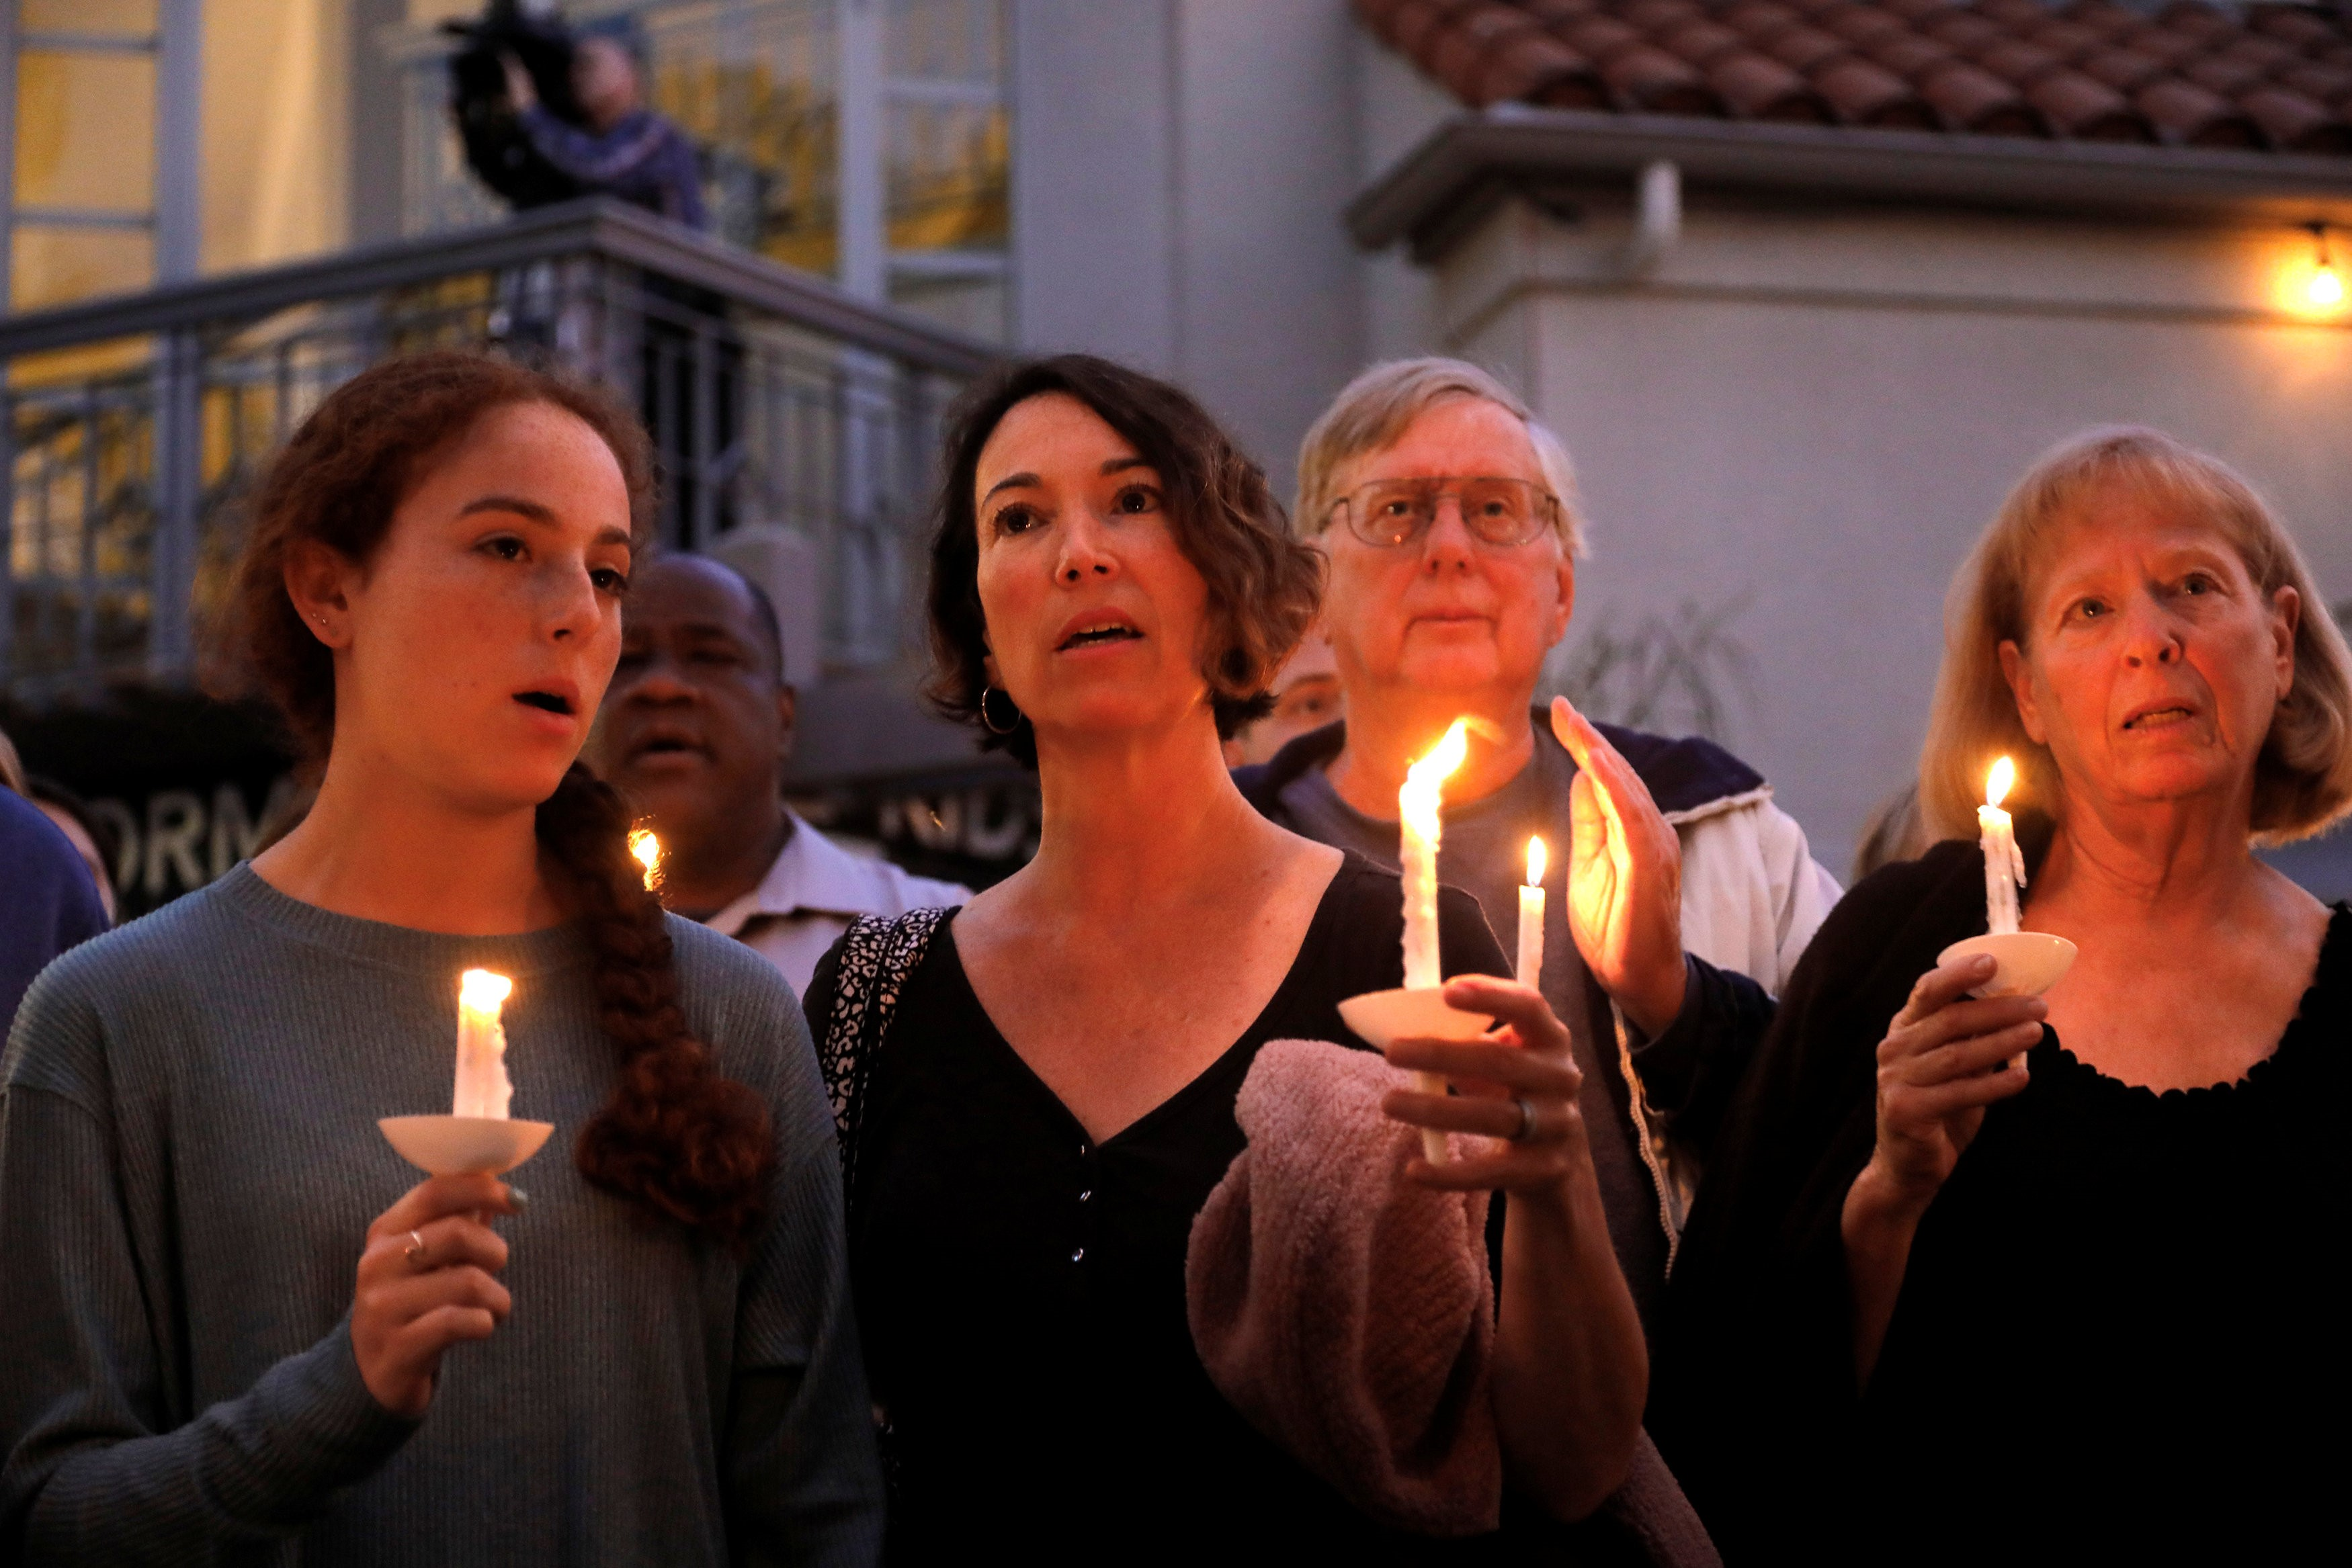 A candlelight vigil is held at Rancho Bernardo Community Presbyterian Church for victims of a shooting incident at the Congregation Chabad synagogue in Poway on 27 April (Reuters)